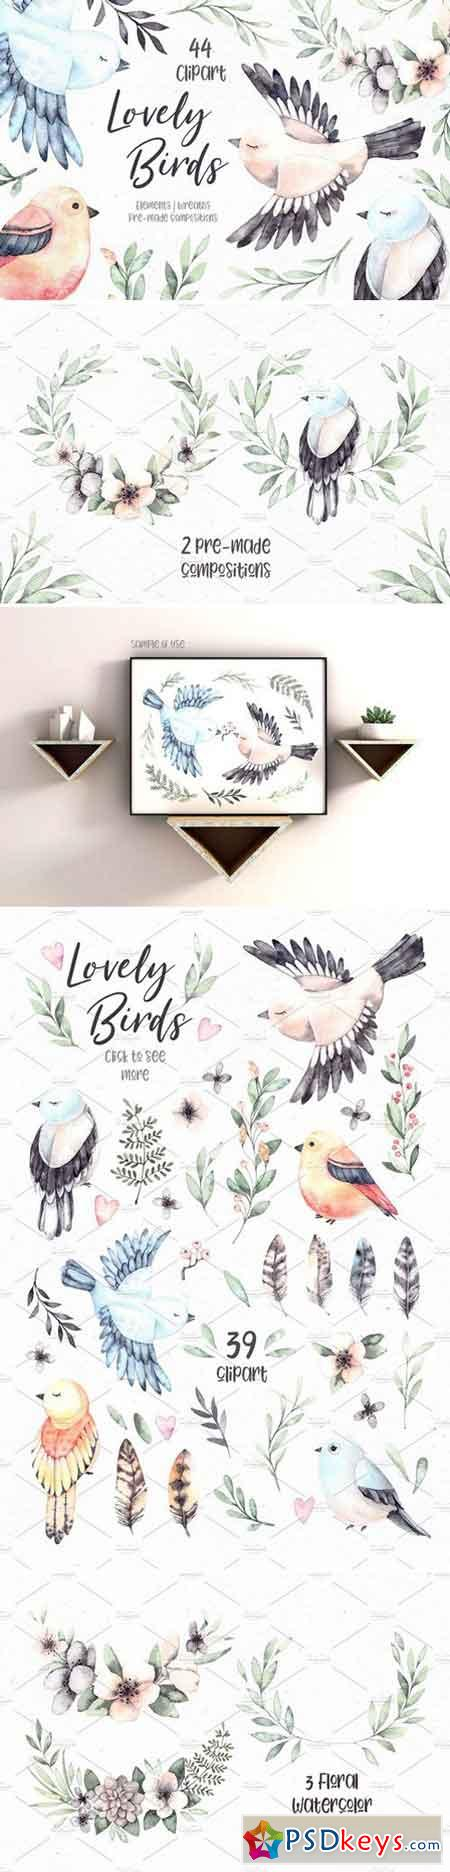 Lovely Birds Watercolor set 2357190